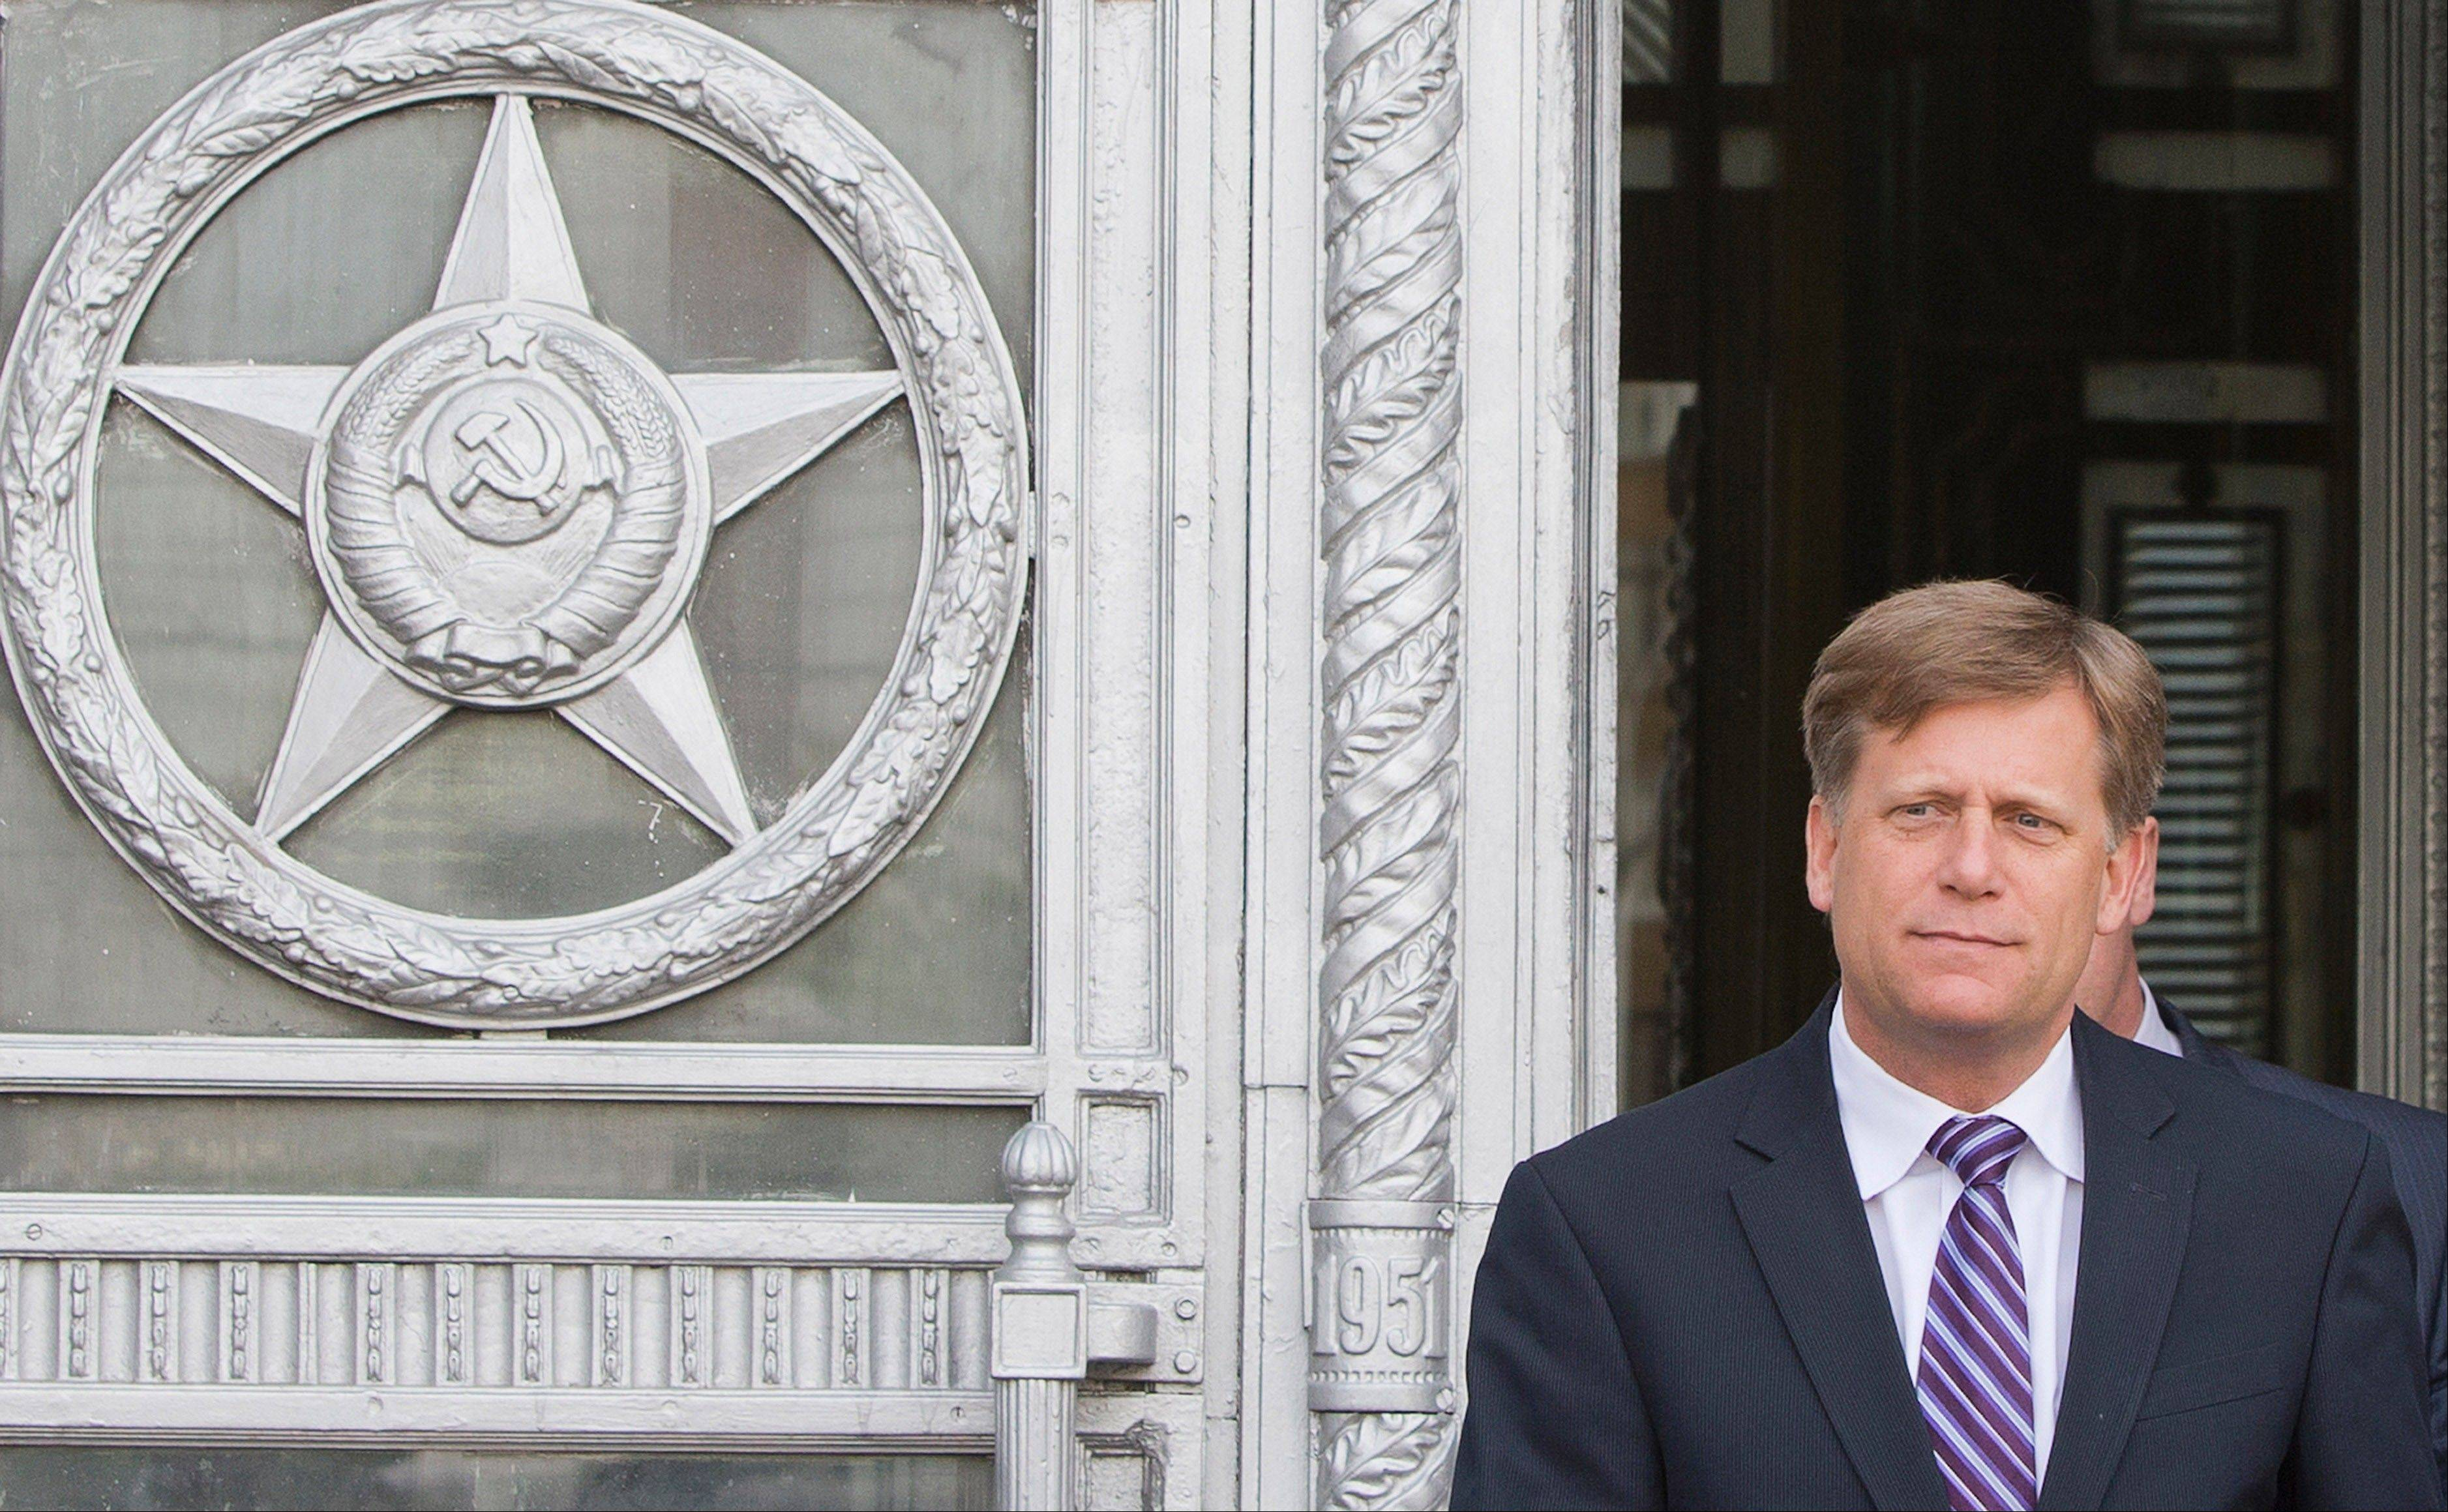 The U.S. Ambassador to Russia Michael McFaul leaves Foreign Ministry headquarters in Moscow, Russia, Wednesday, May 15, 2013. McFaul was summoned by the Russian foreign ministry in connection with an alleged spy detention in Moscow. He entered the ministry's building in central Moscow Wednesday morning and left half an hour later without saying a word to journalists waiting outside the compound.